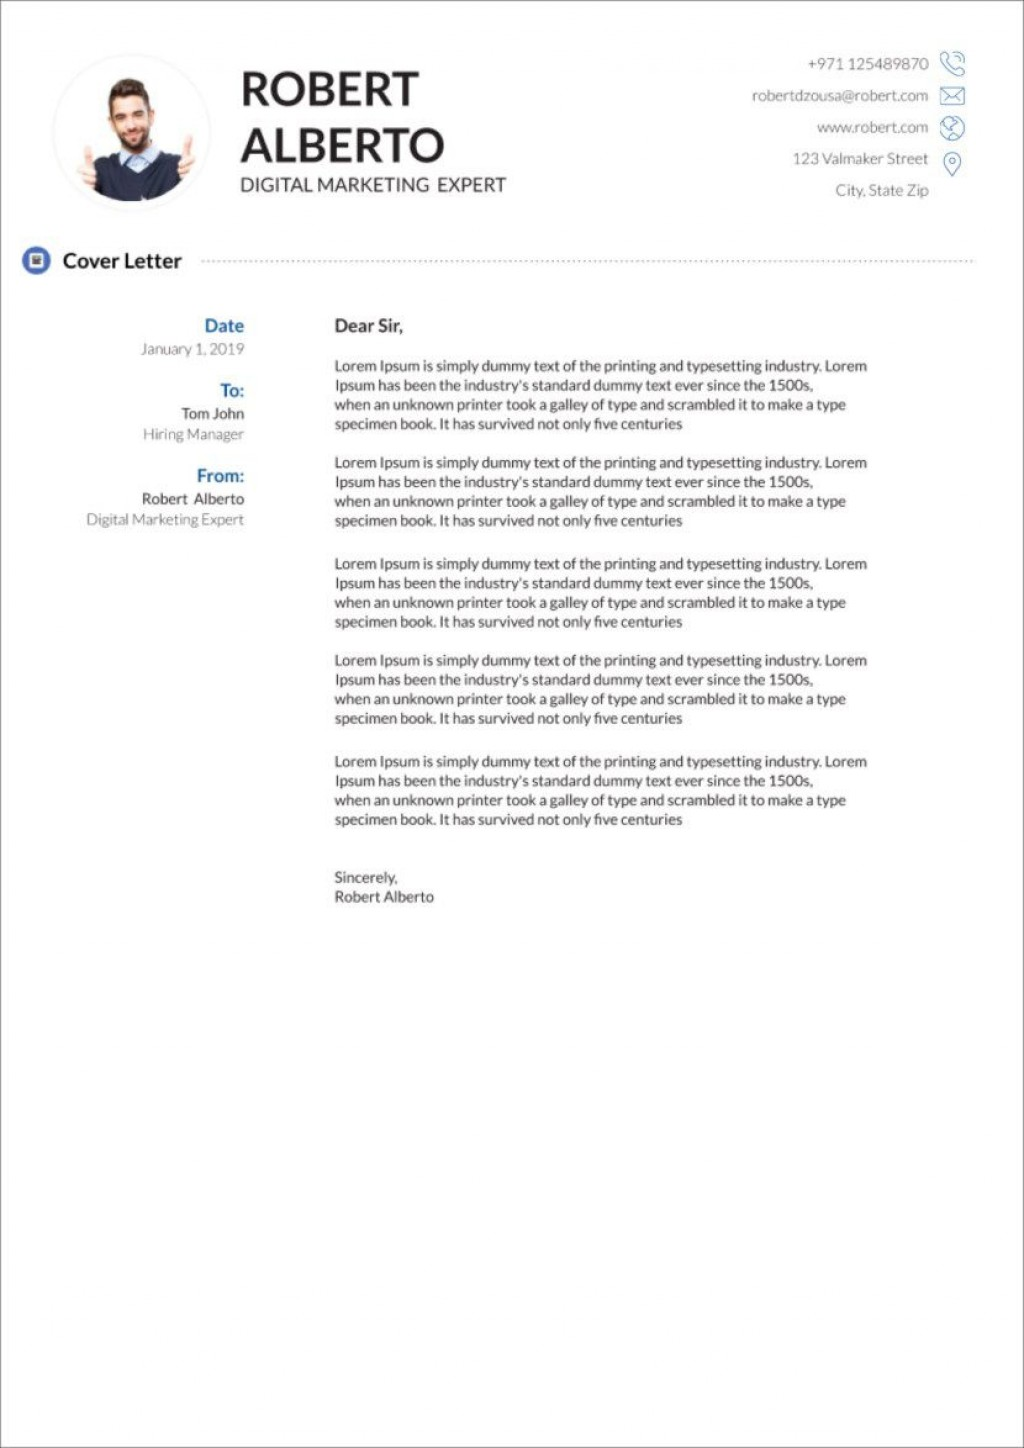 002 Exceptional Download Cover Letter Template Free High Resolution  Mac Creative Microsoft Word DocumentLarge